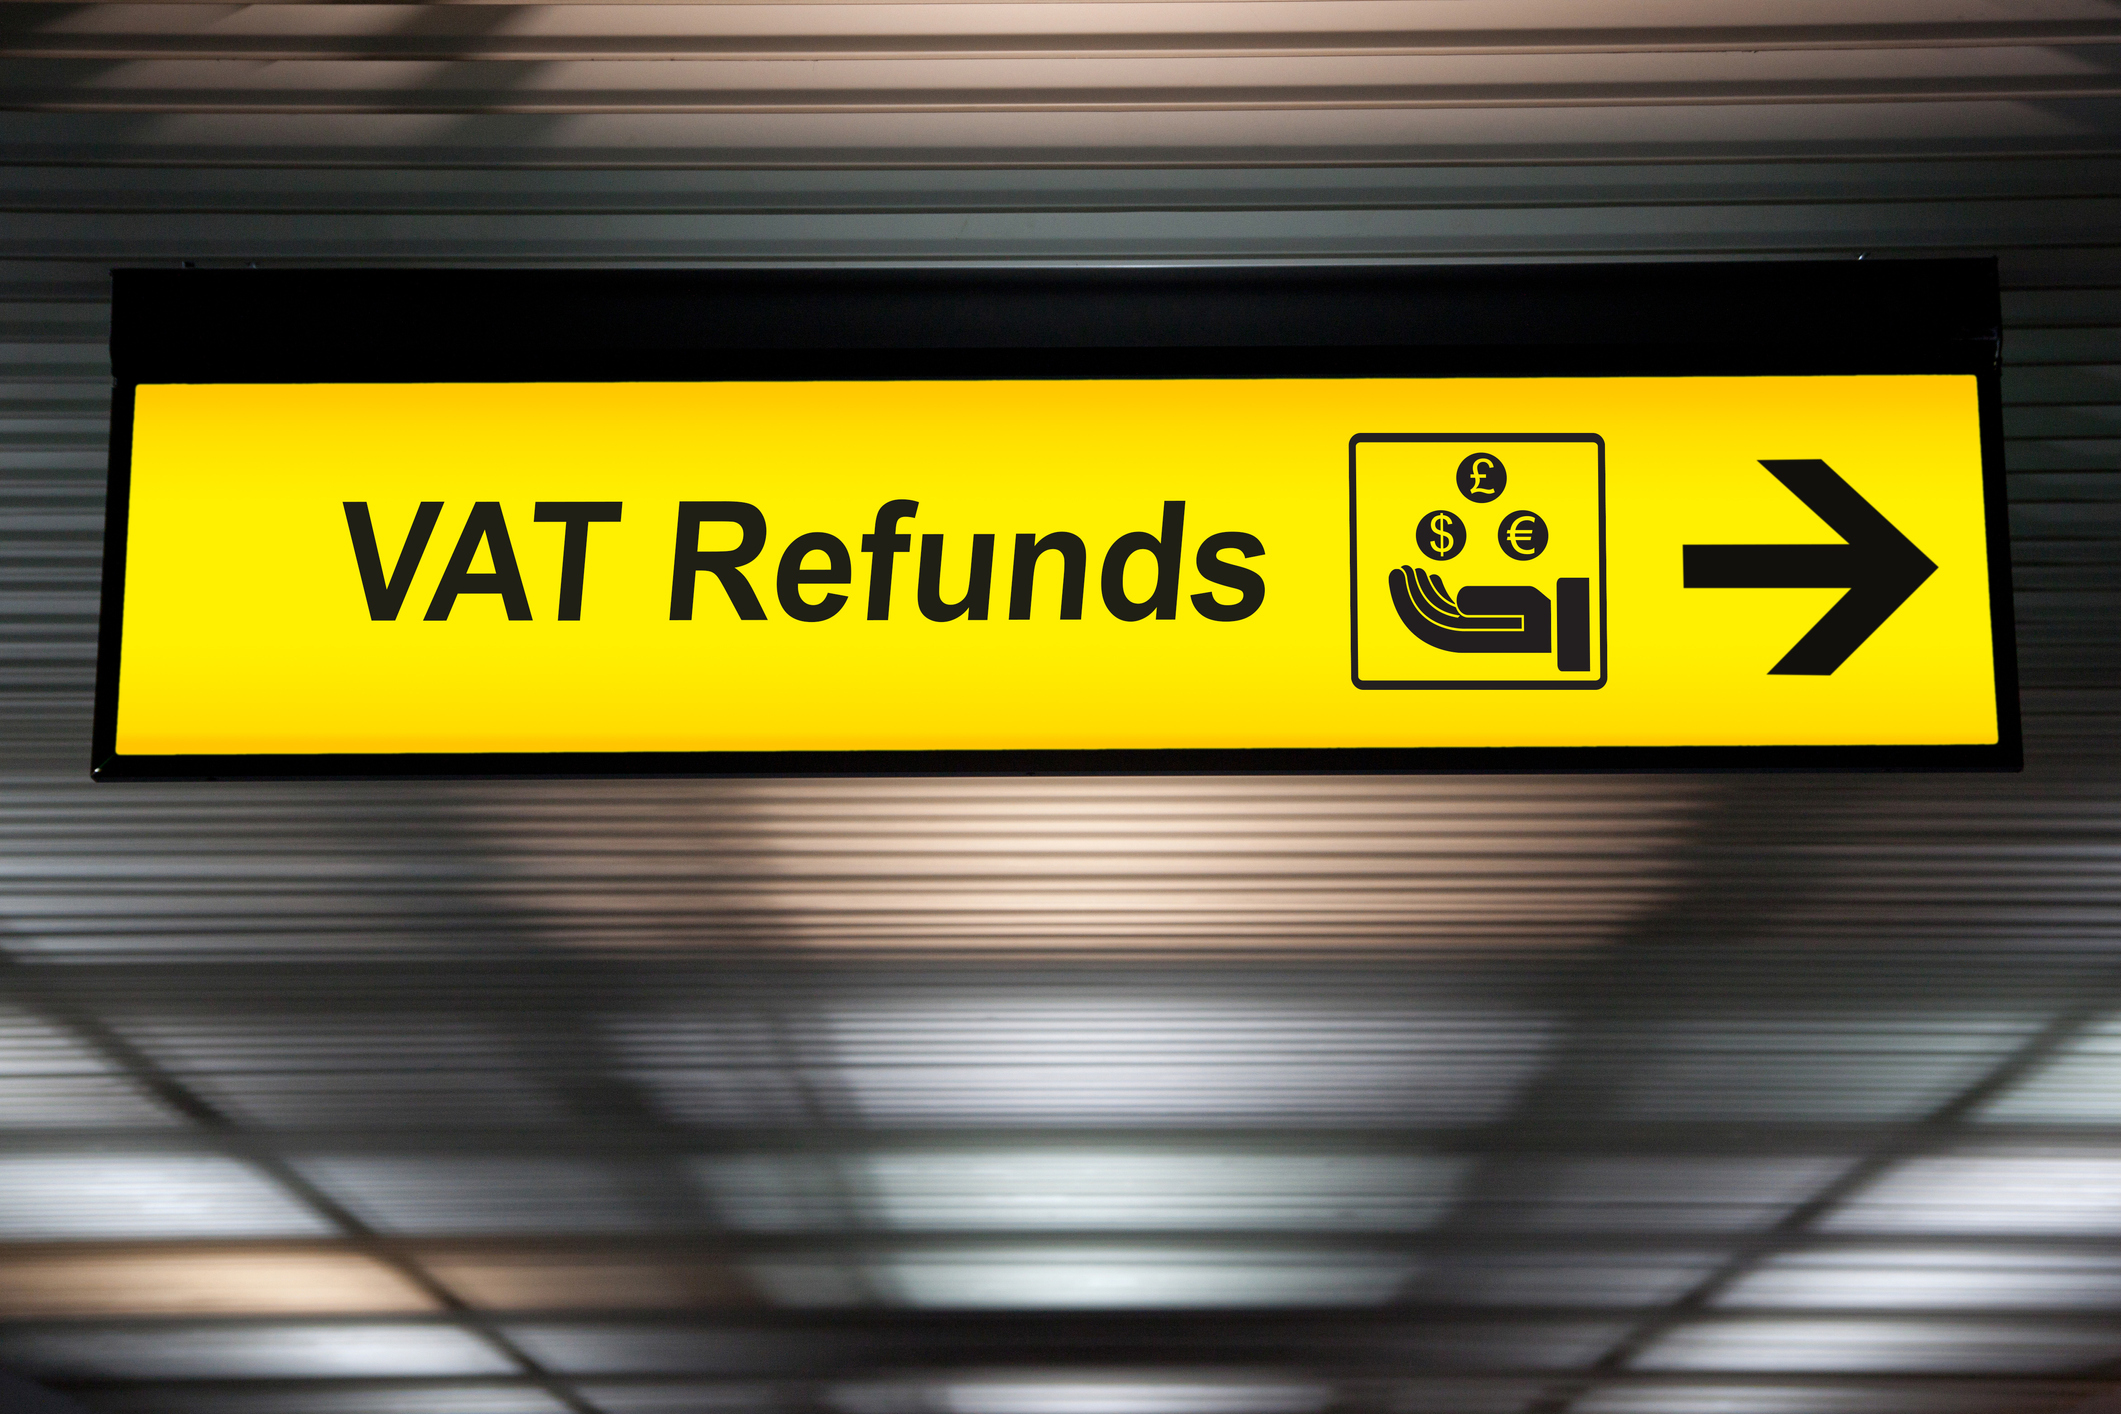 Vat recovery - Your business costs and expenses results in VAT refunds. They shouldn't fall through the cracks. From supplier invoices to travel expenses, Vathub manages the return process and recovers foreign VAT.